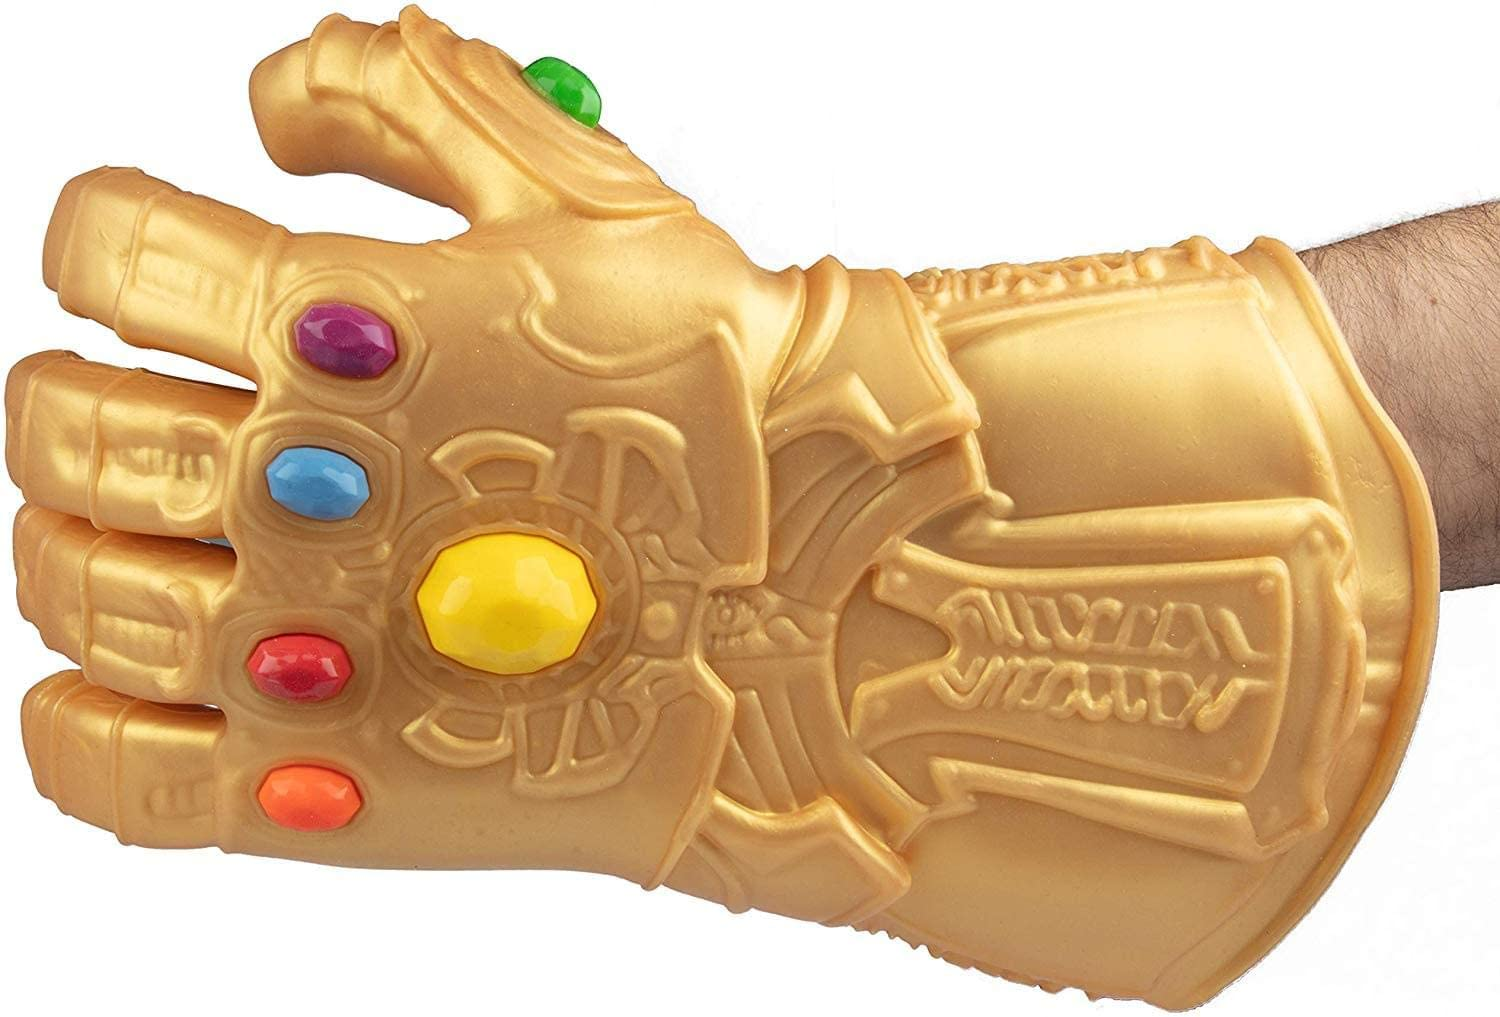 marvel-gifts-oven-glove